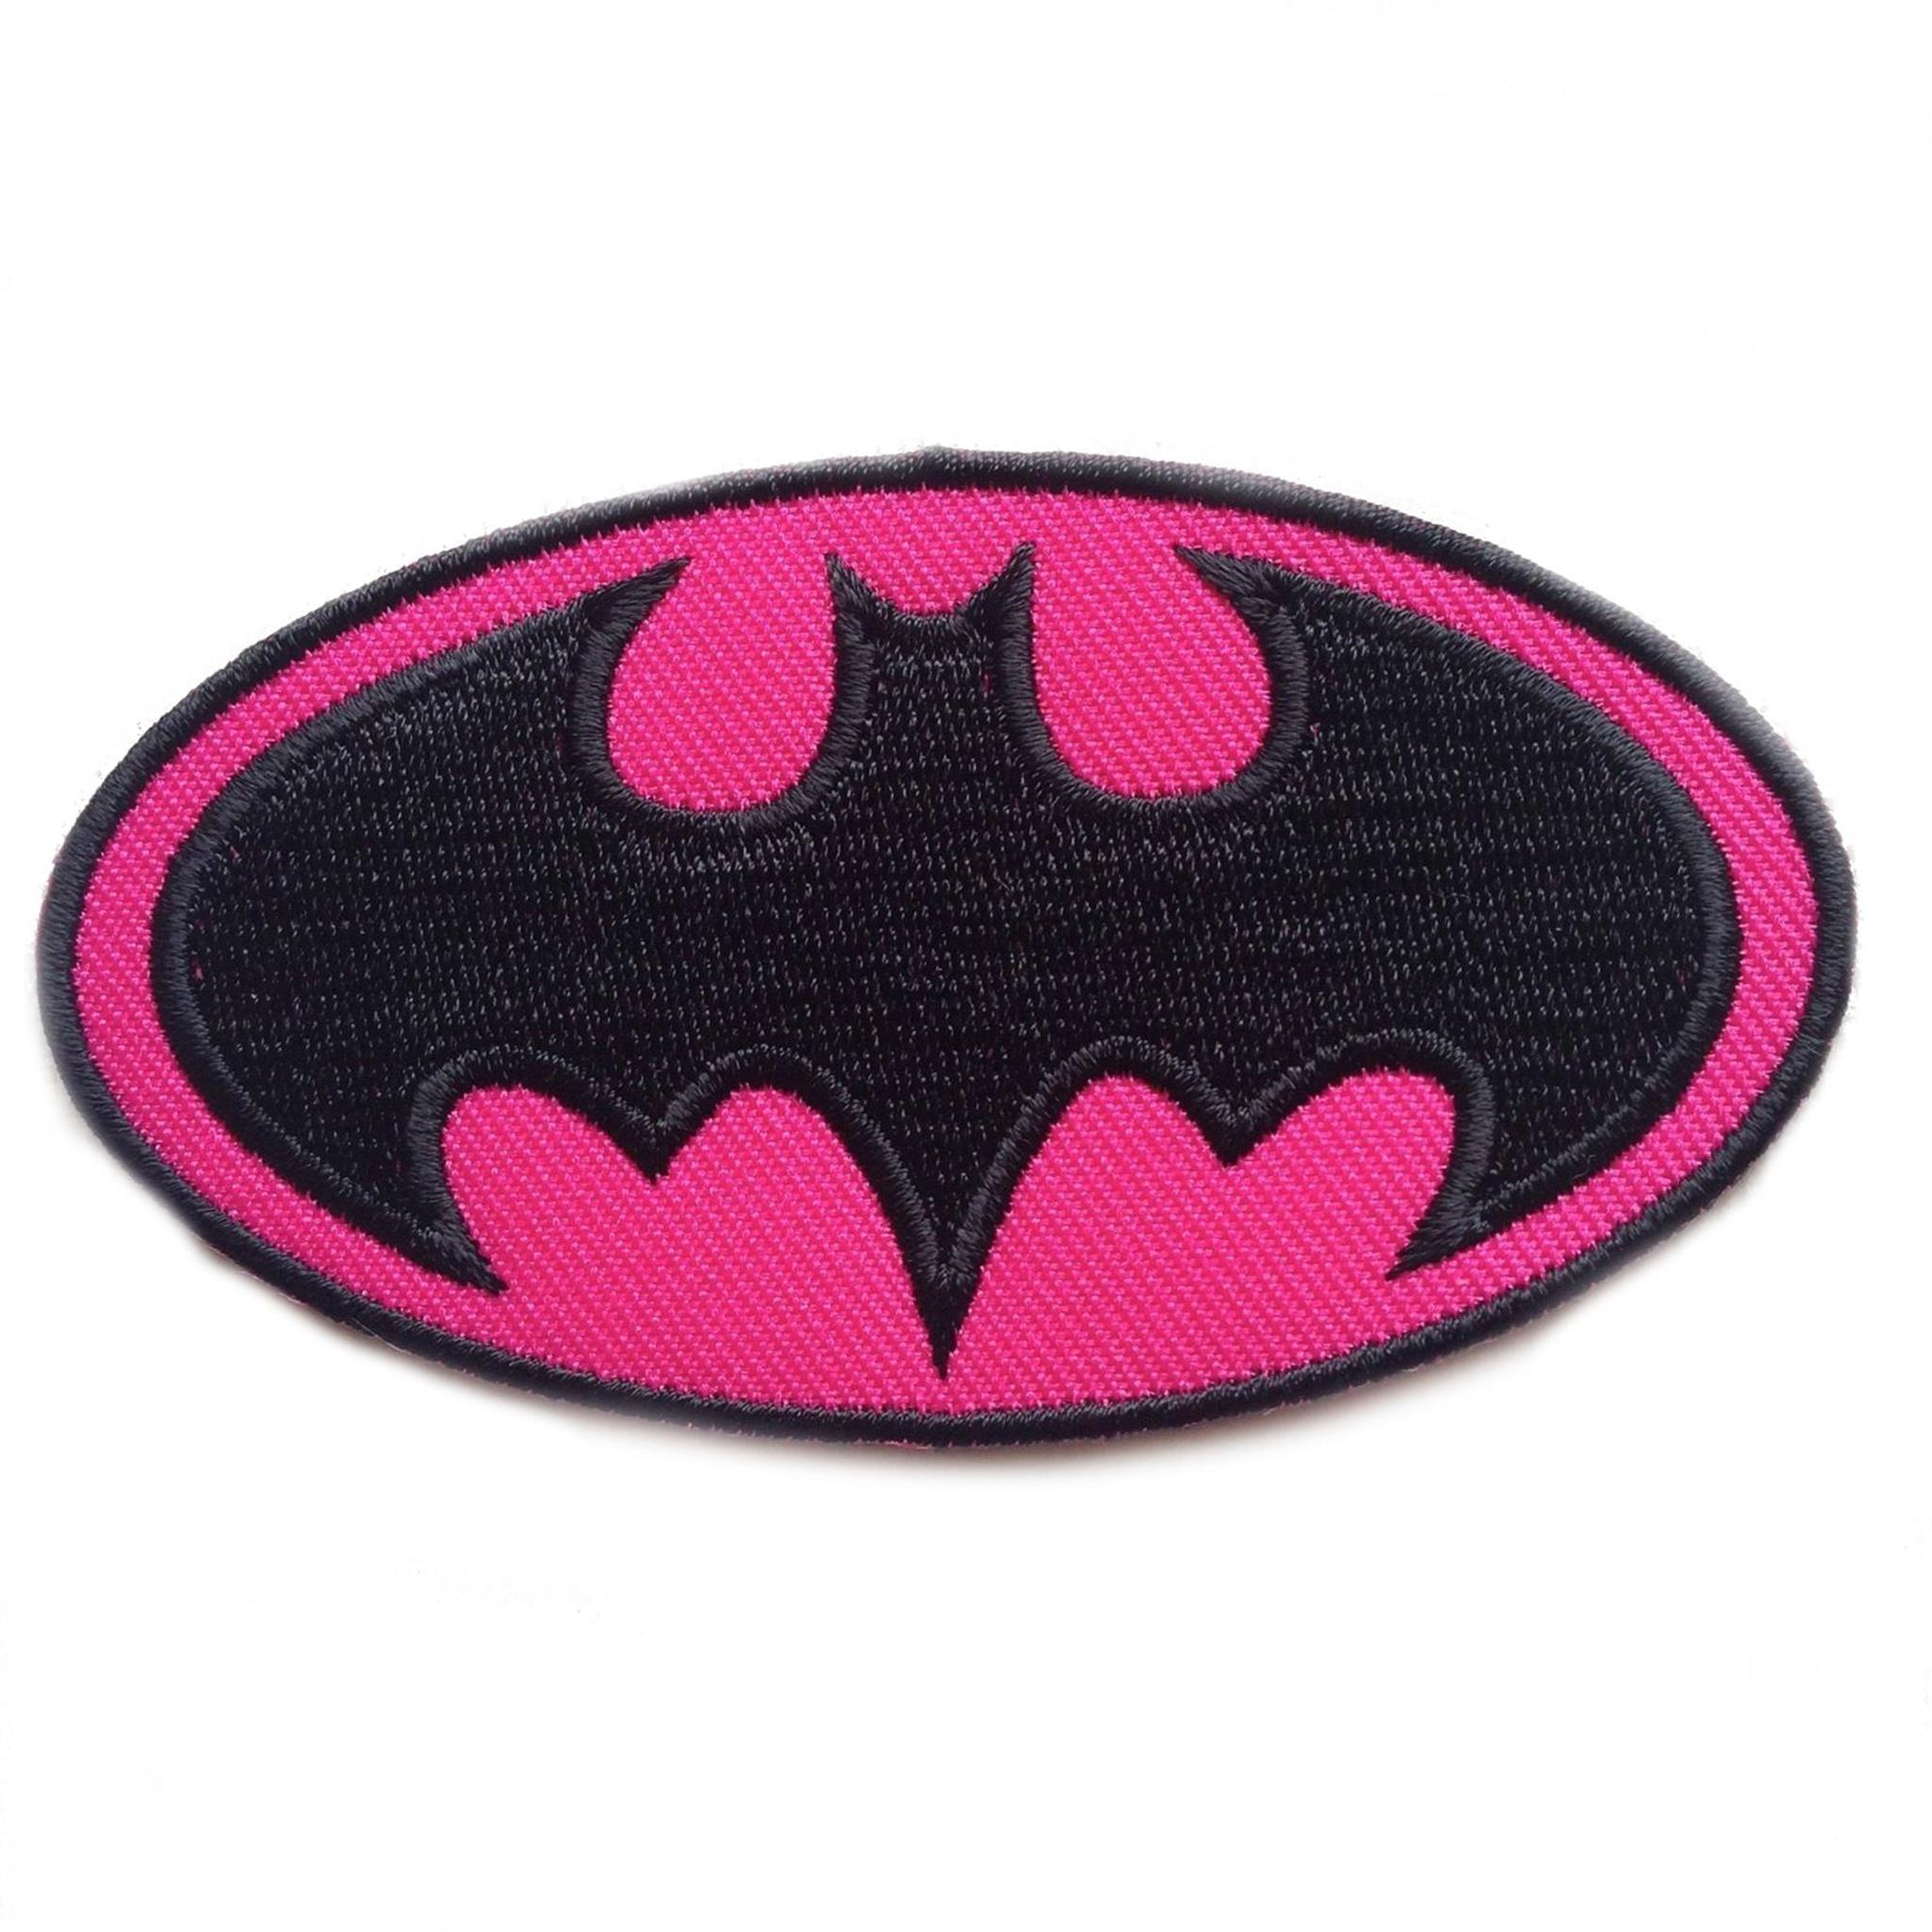 "Superheroes DC Comics Batgirl Logo 3.75"" X 2"" Embroidered Iron/Sew-on Applique Patches"